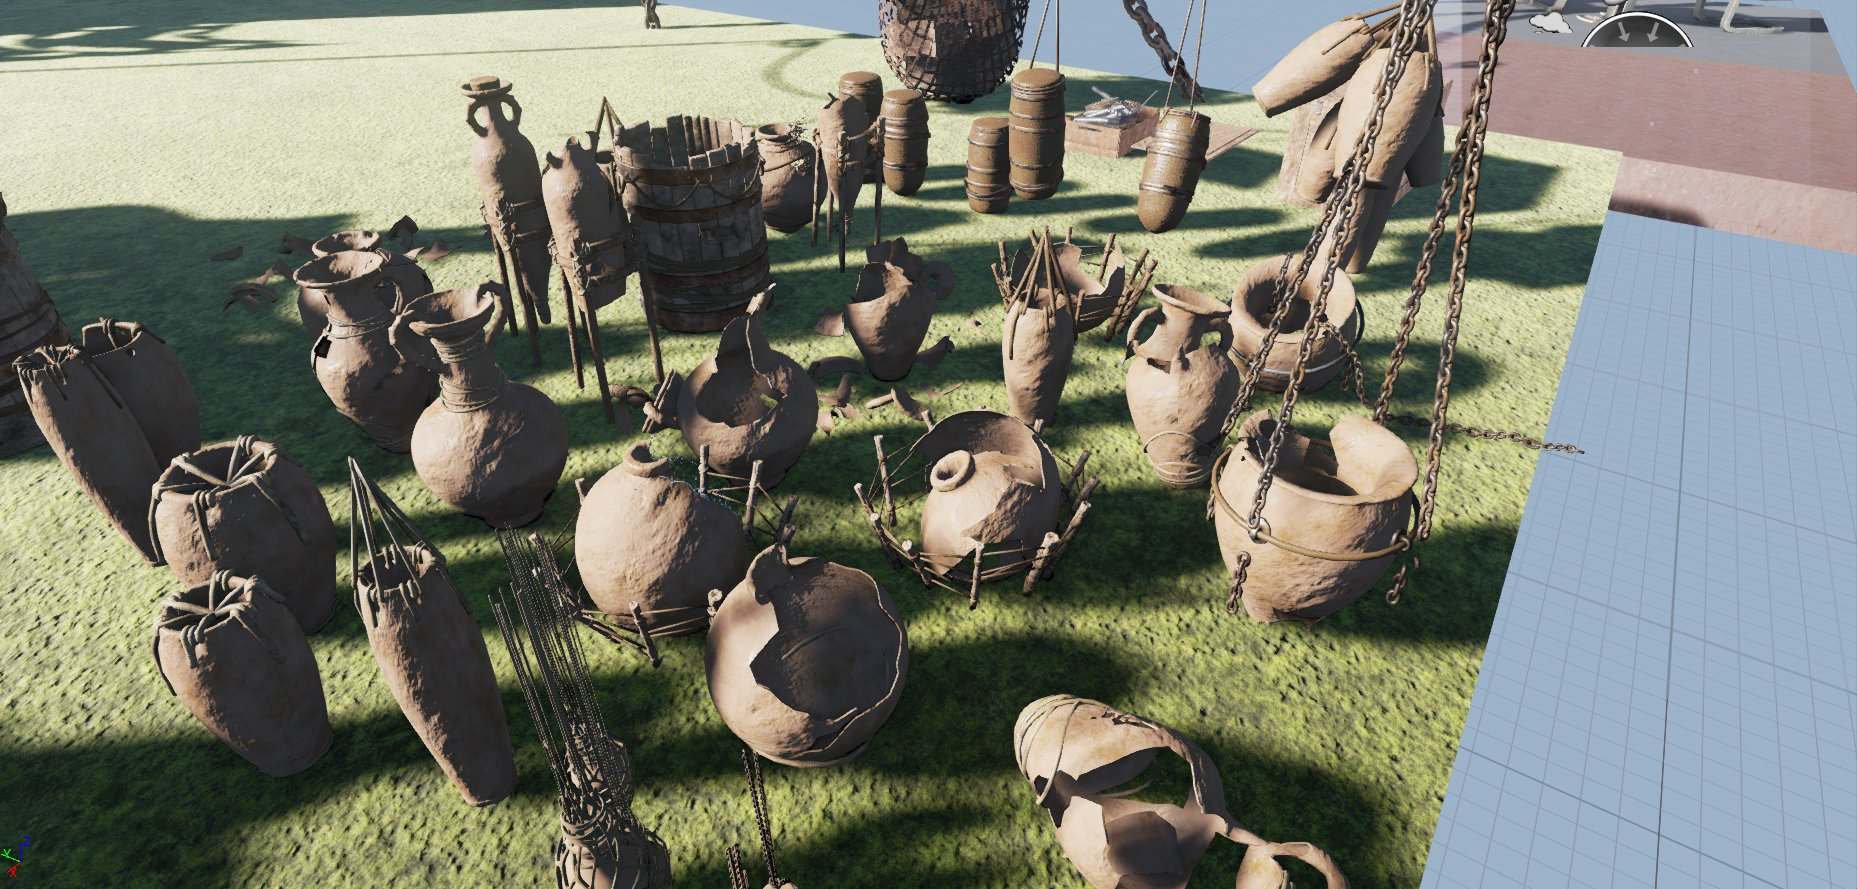 FREE] more than 150 modular assets for ue4 - Unreal Engine